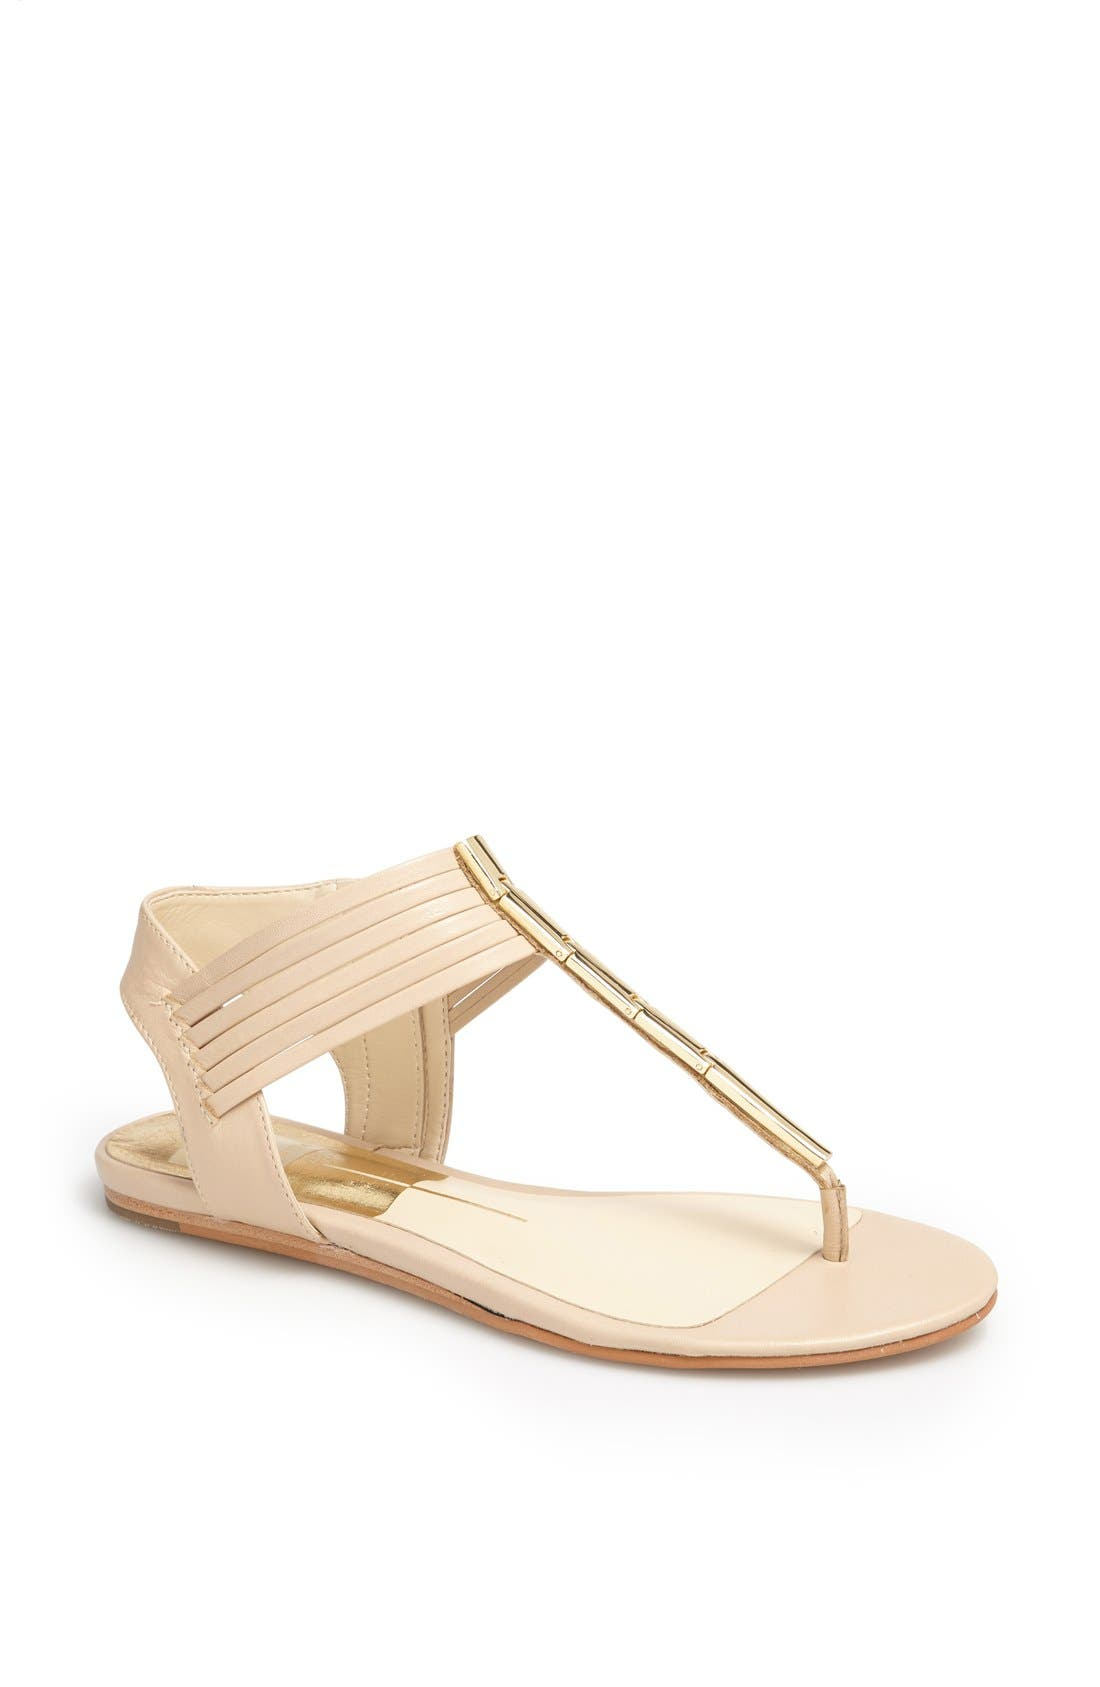 Alternate Image 1 Selected - Dolce Vita 'Amala' Sandal